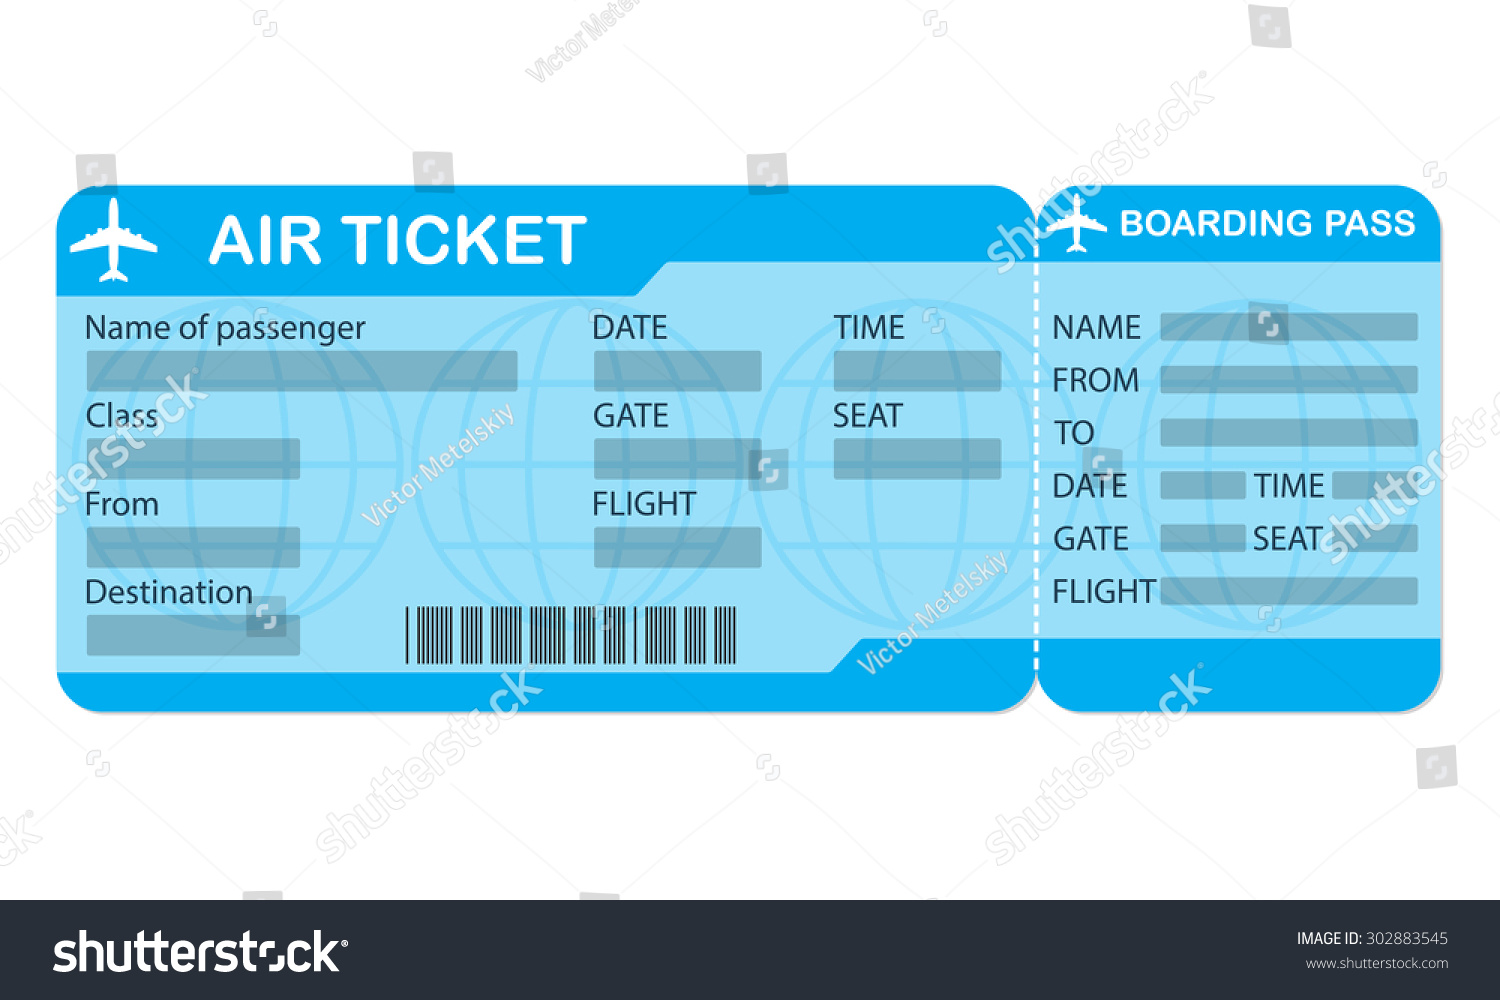 train ticket template word - vintage train ticket invitation hot girls wallpaper